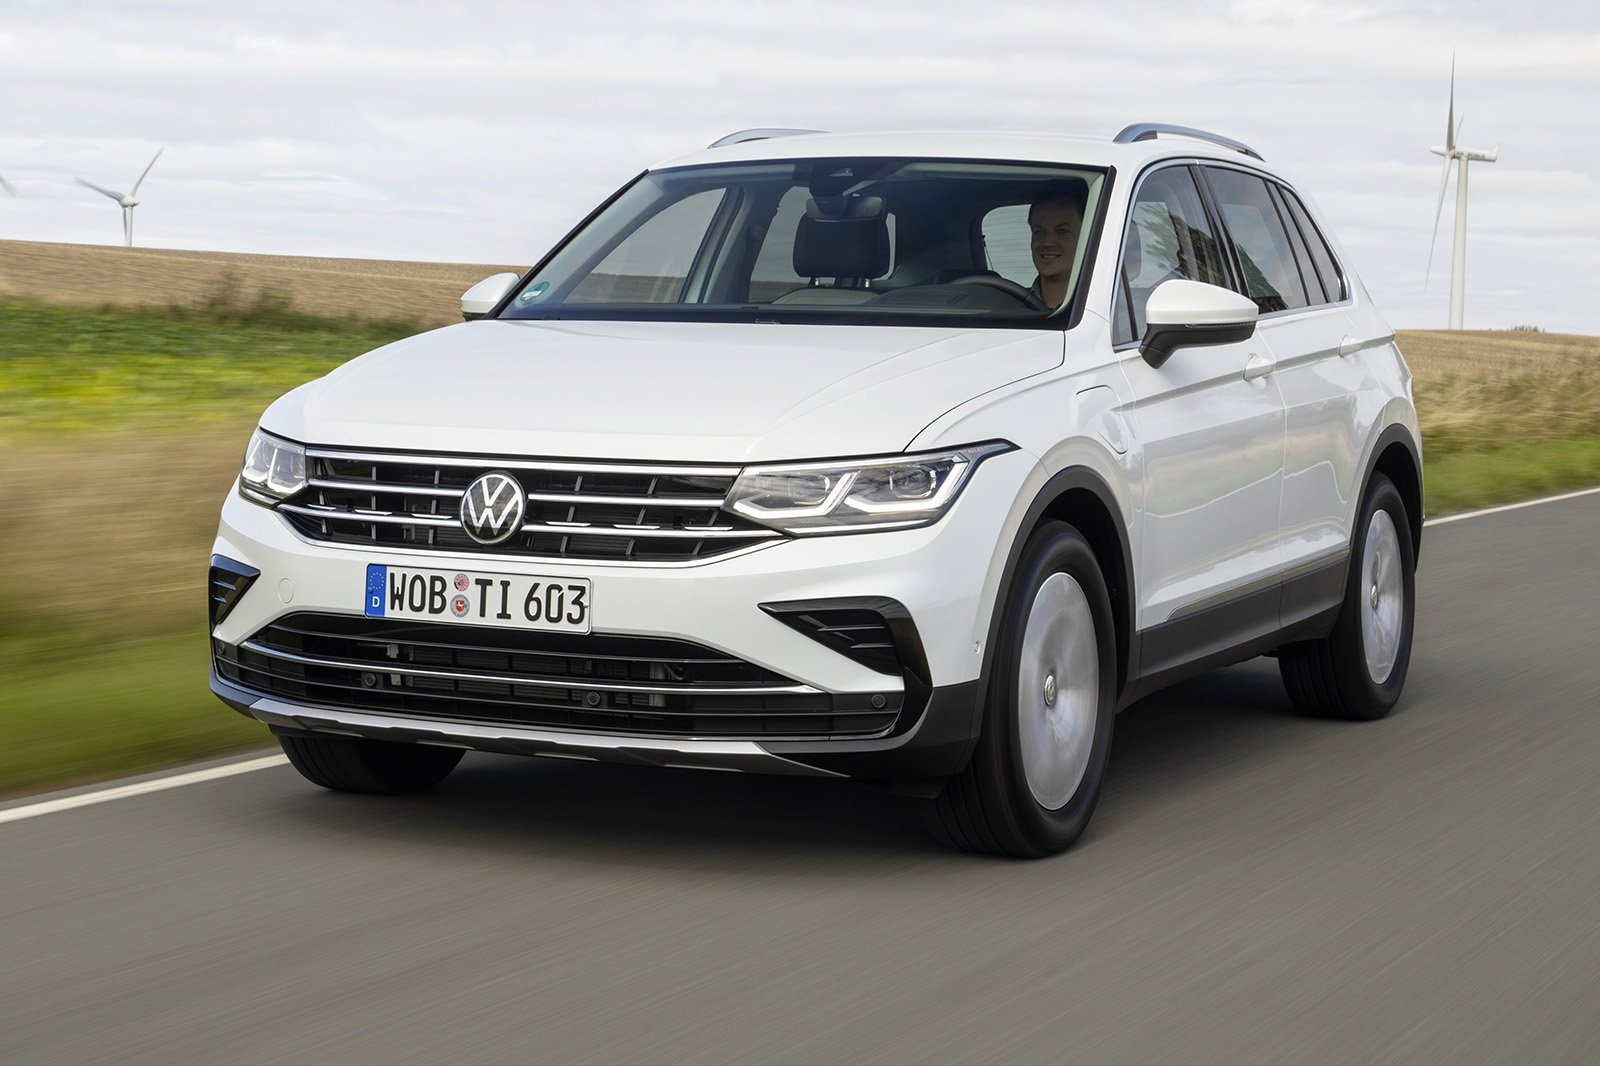 2021 VW Tiguan eHybrid with wind turbines